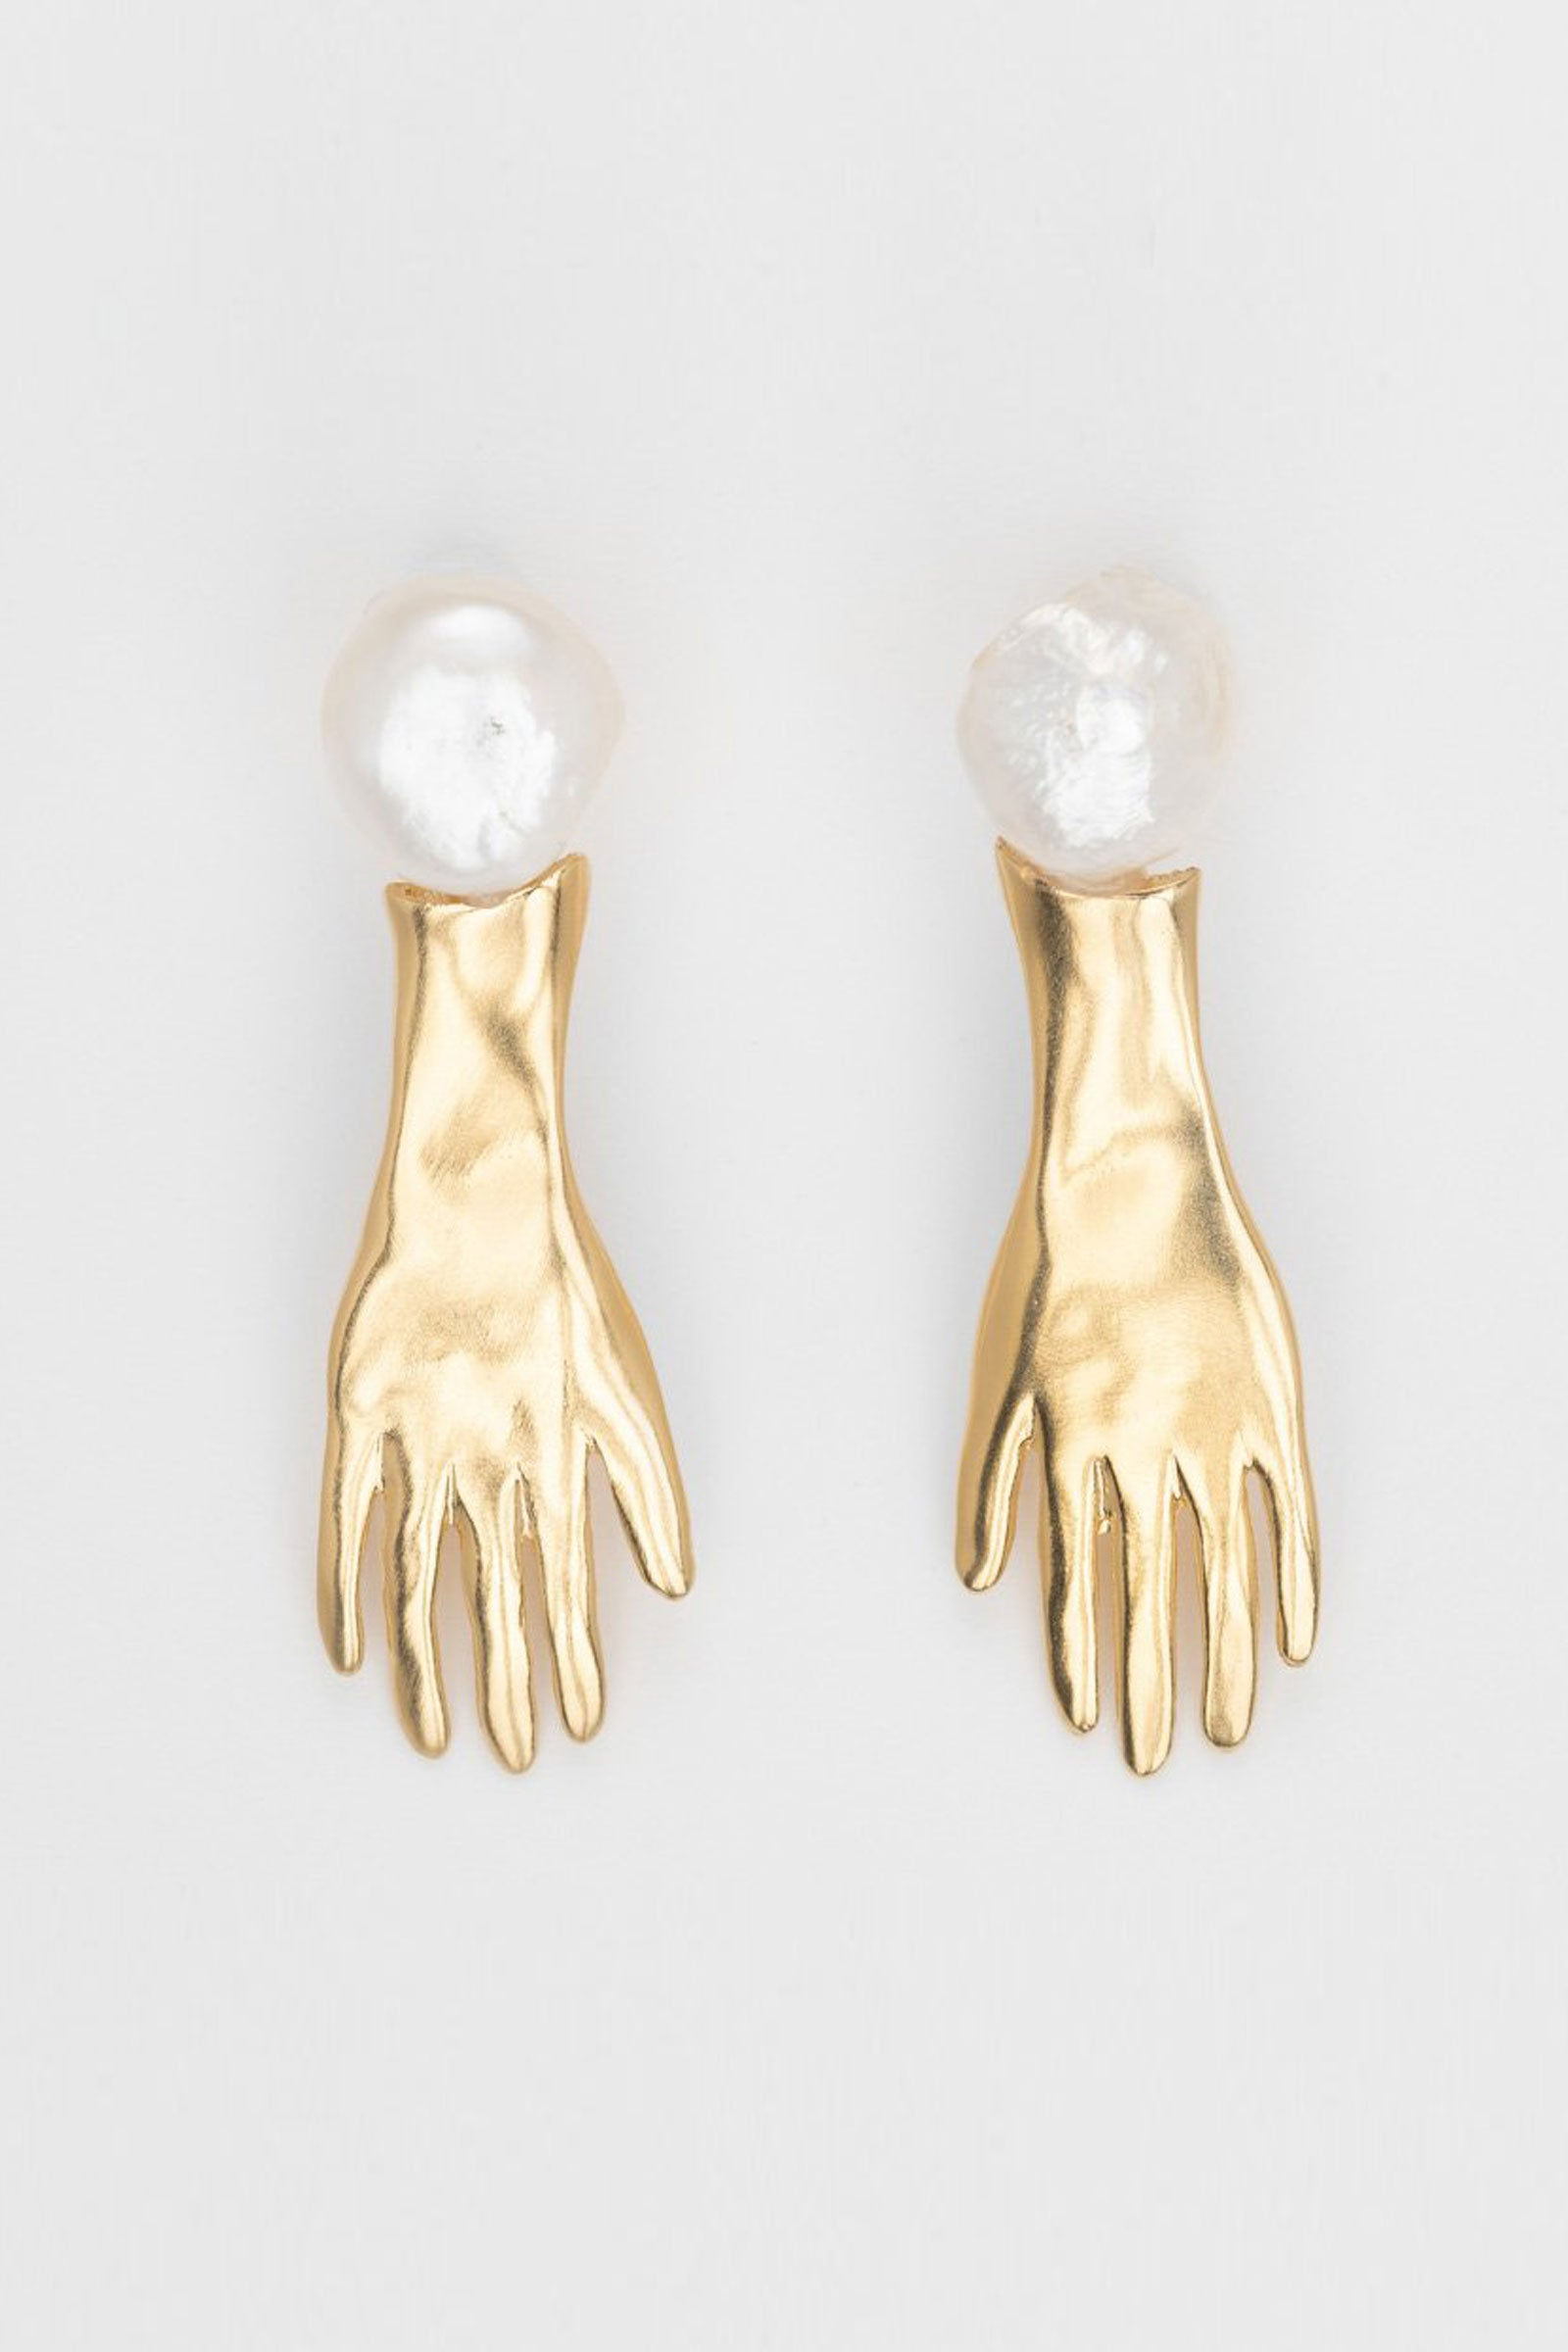 The Pearl White Spirit Silver Earrings